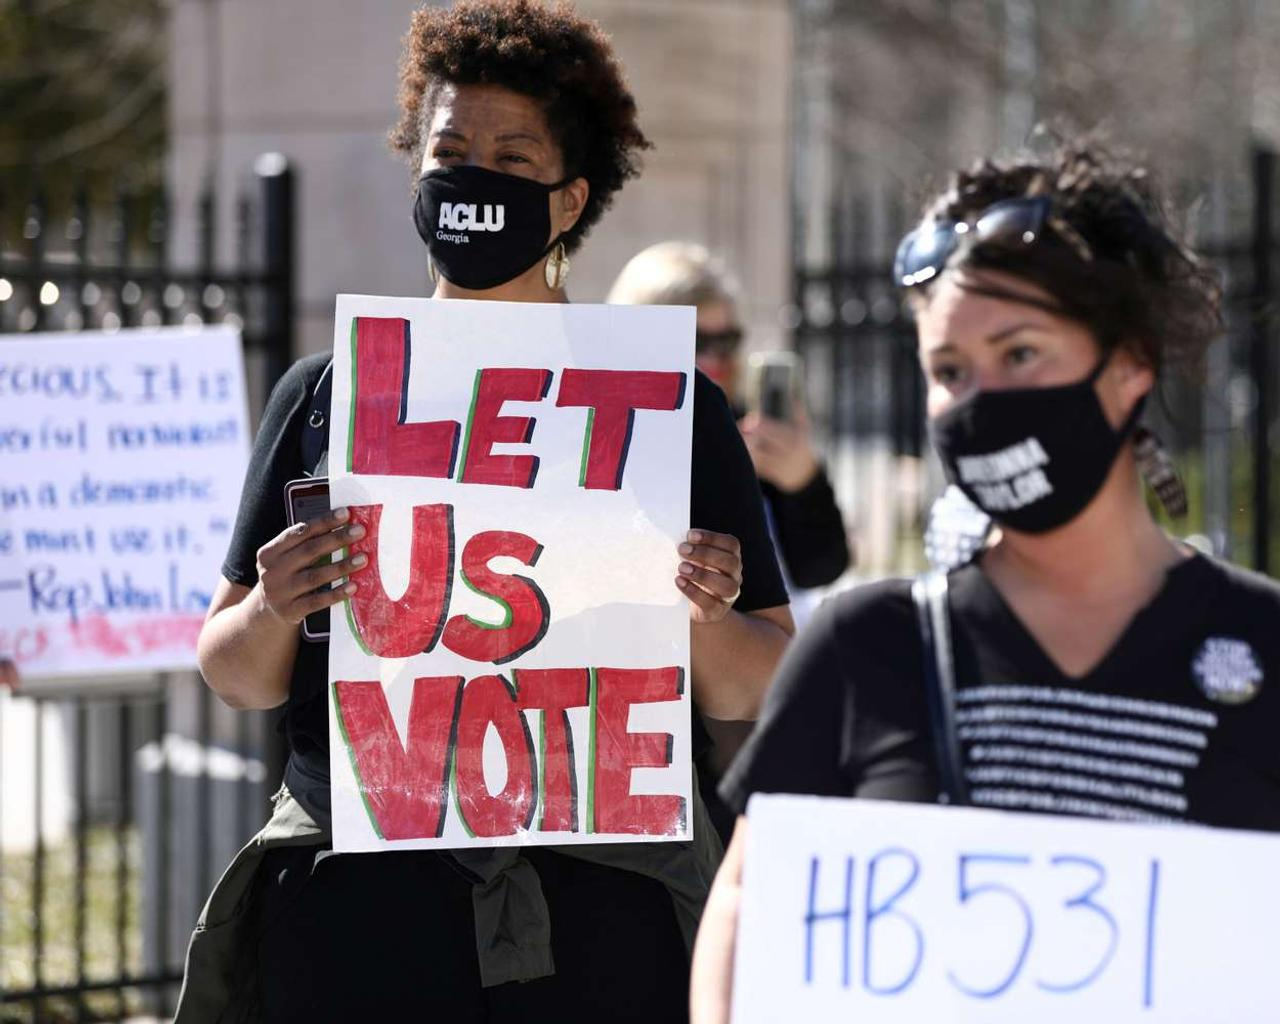 The Republic of Georgia made two major mistakes when it came to voting rights